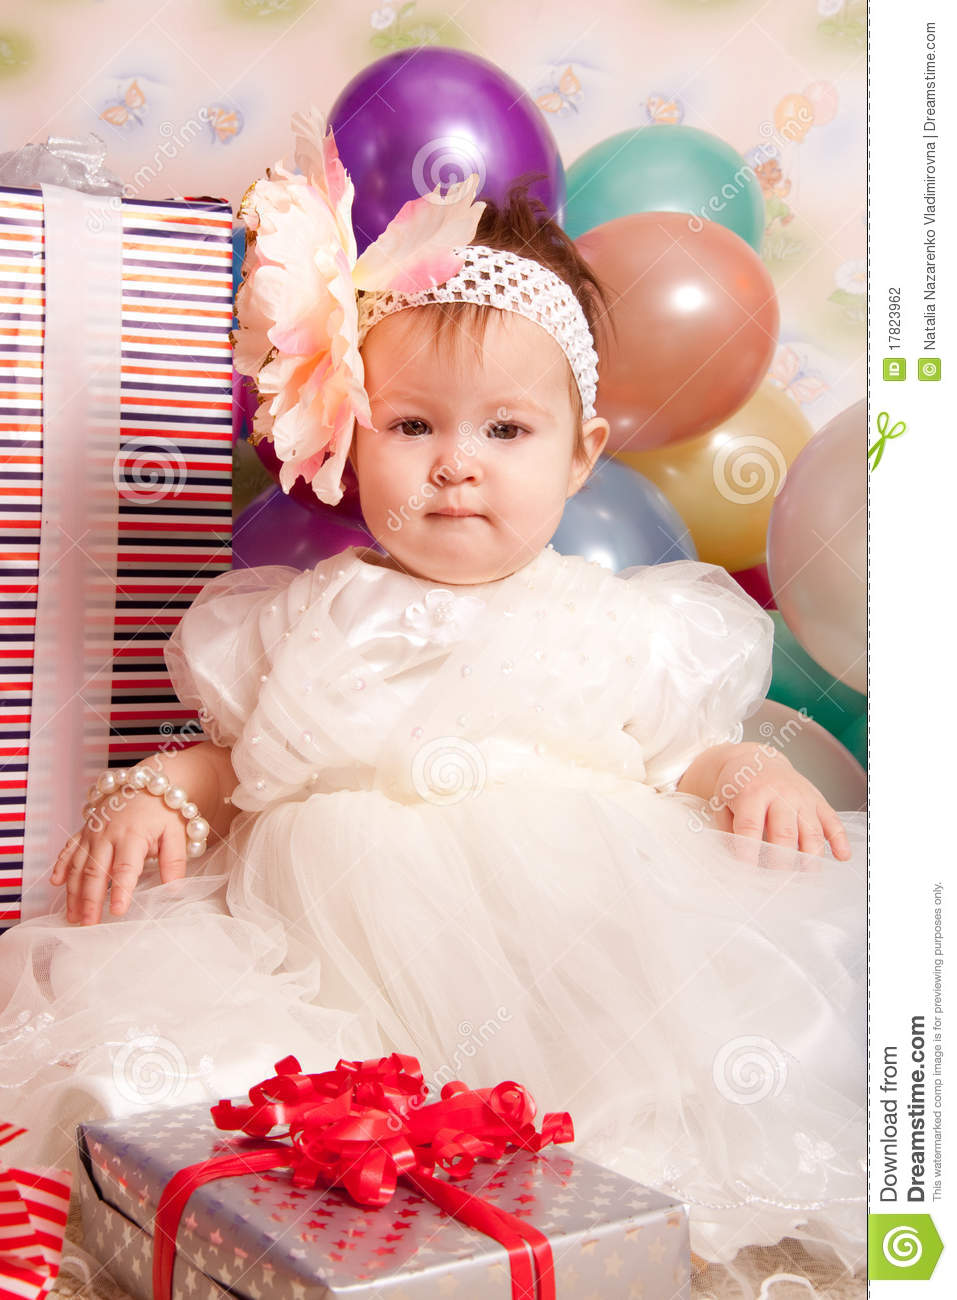 Happy Birthday Baby Stock Photo Image Of Child Dream